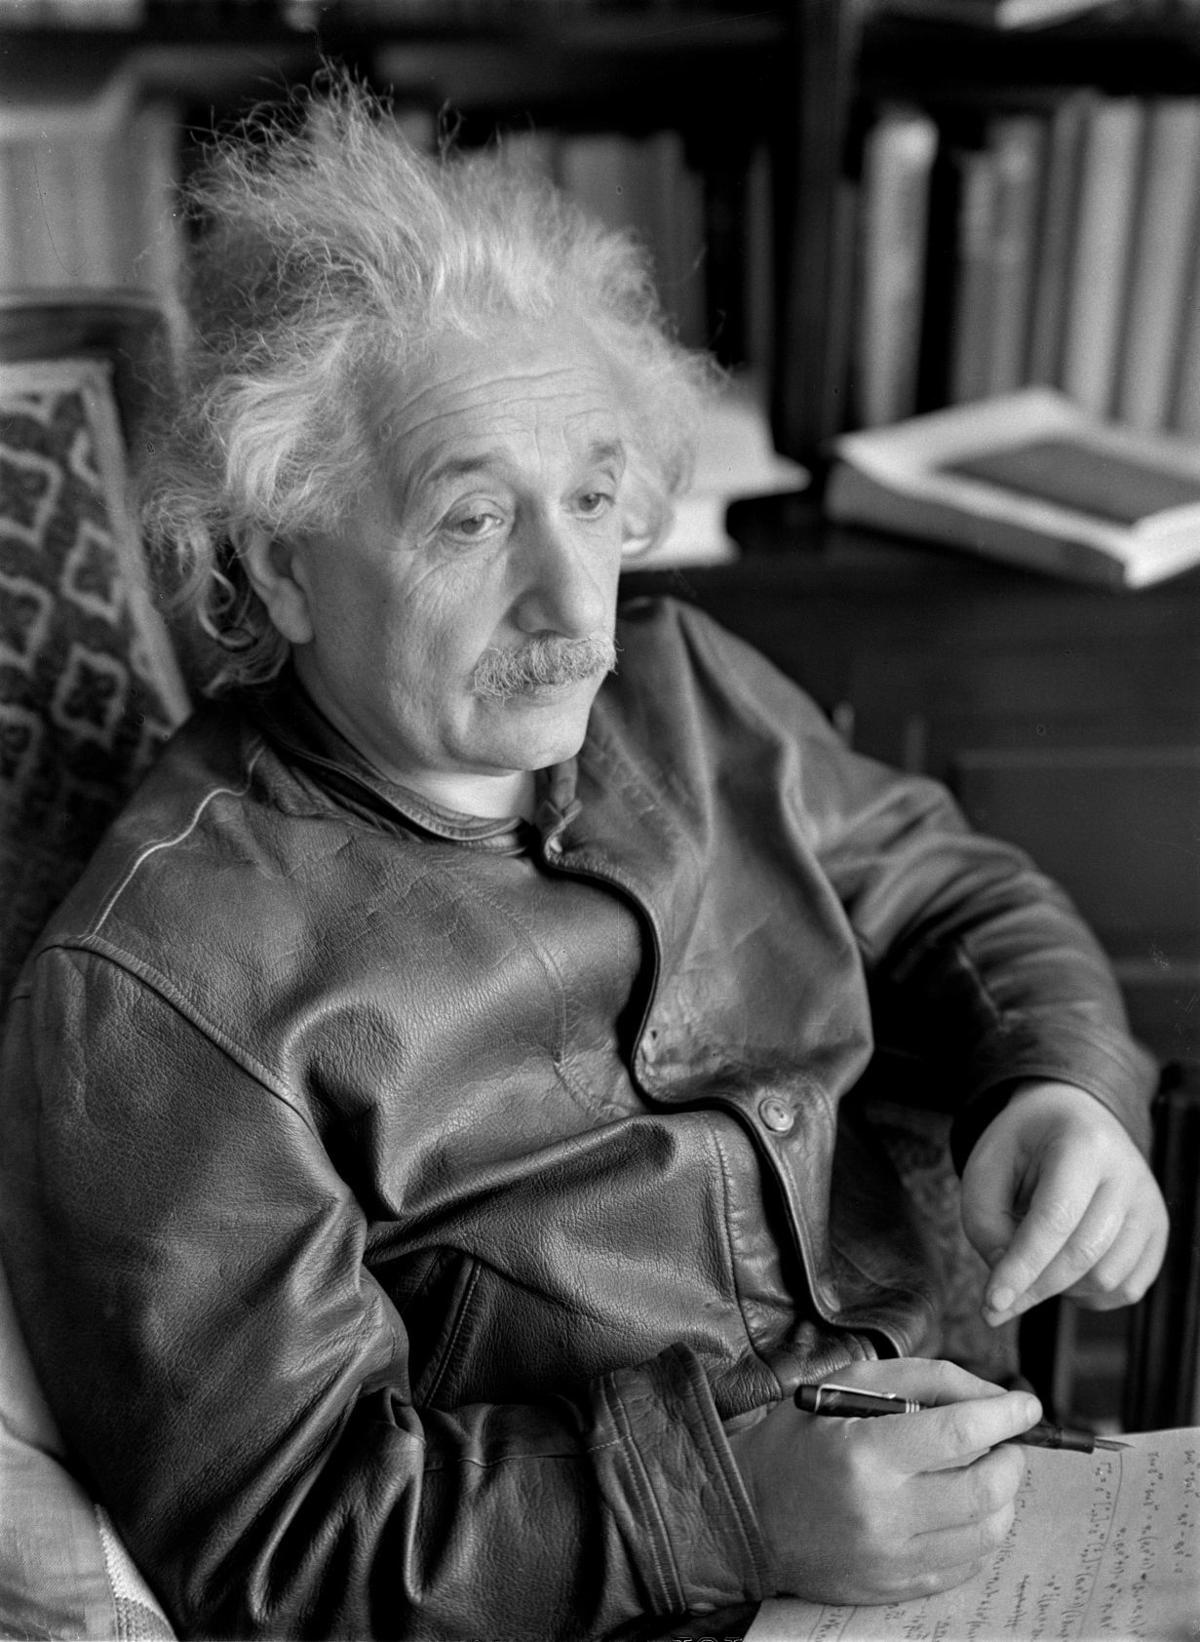 Lotte Jacobi's portrait of Albert Einstein